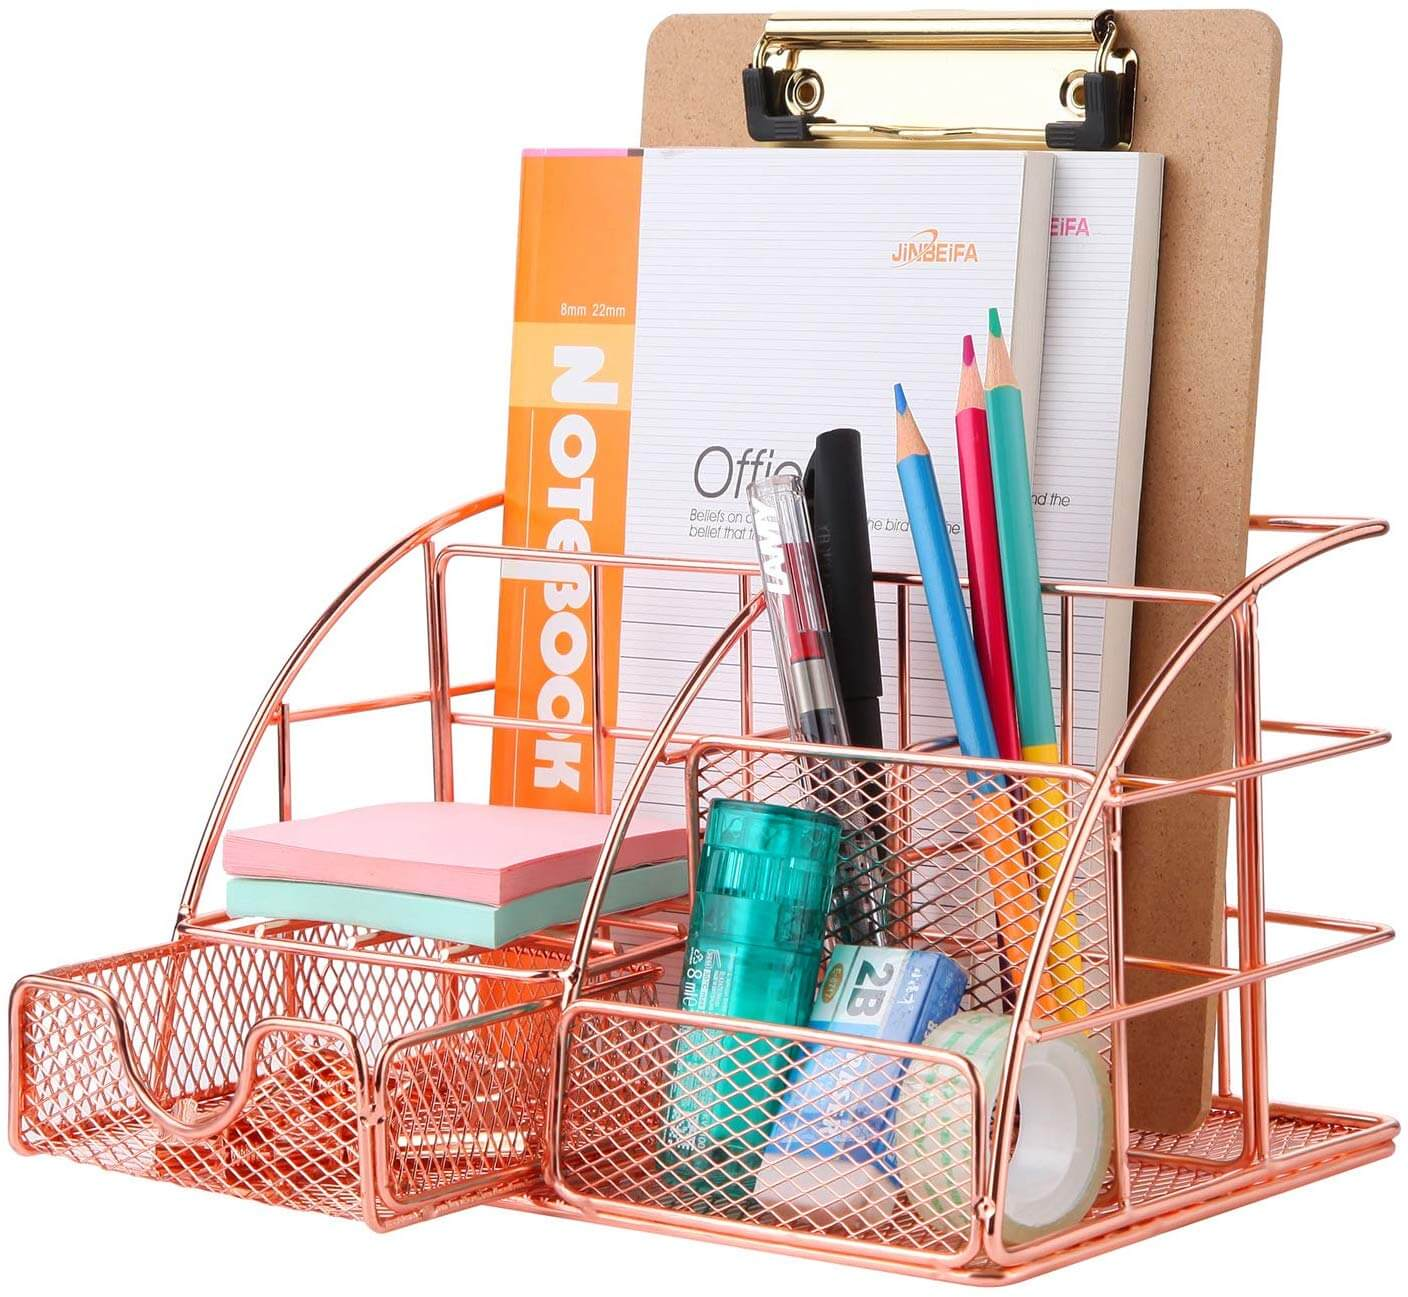 rose gold desk organizer as an idea of how to get organized